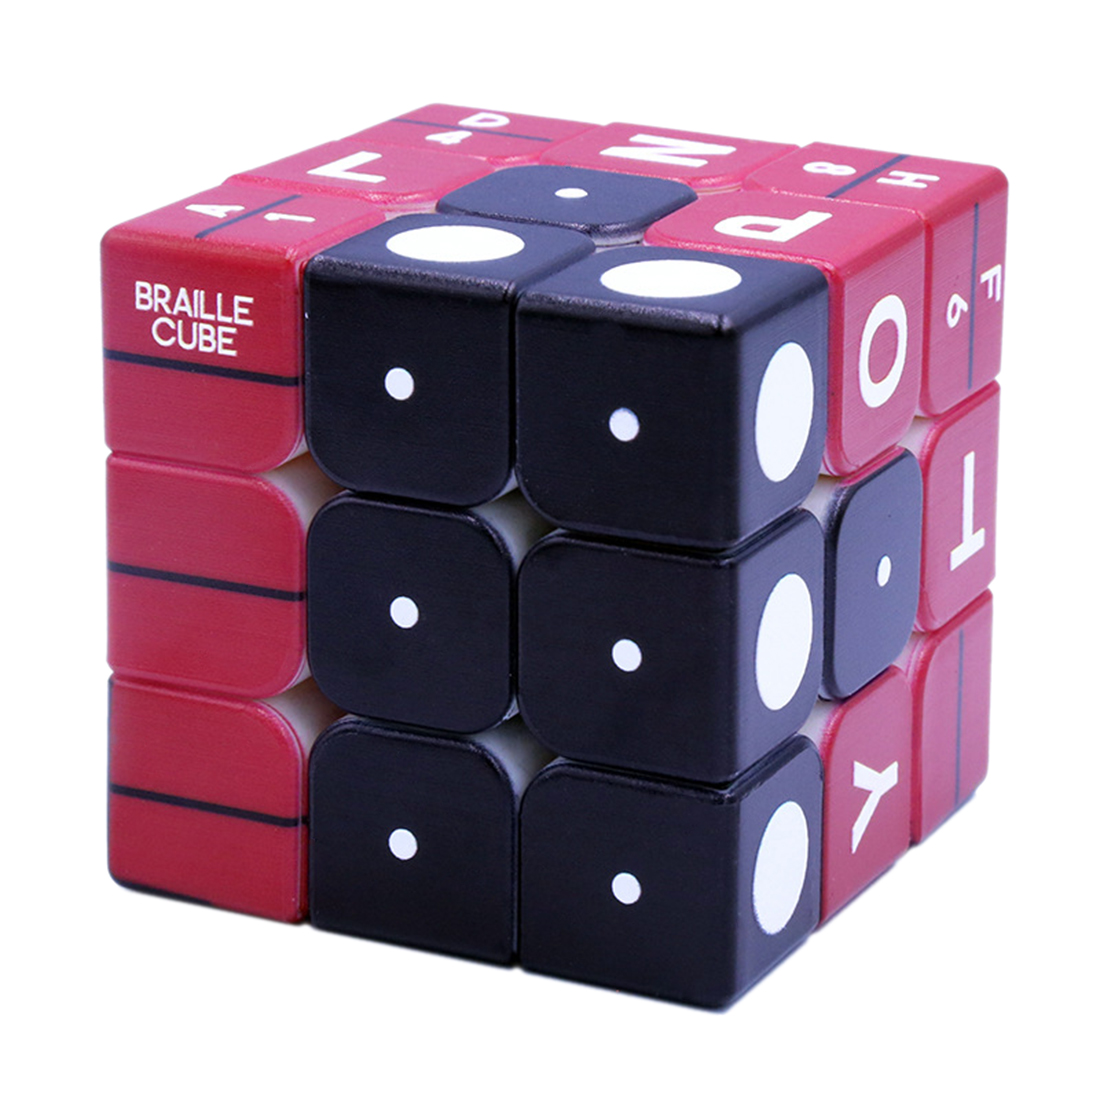 3x3x3 Braille Number Fingerprint Relief Effect Magic Cube Puzzle Cube Game For Blind Playing Gift